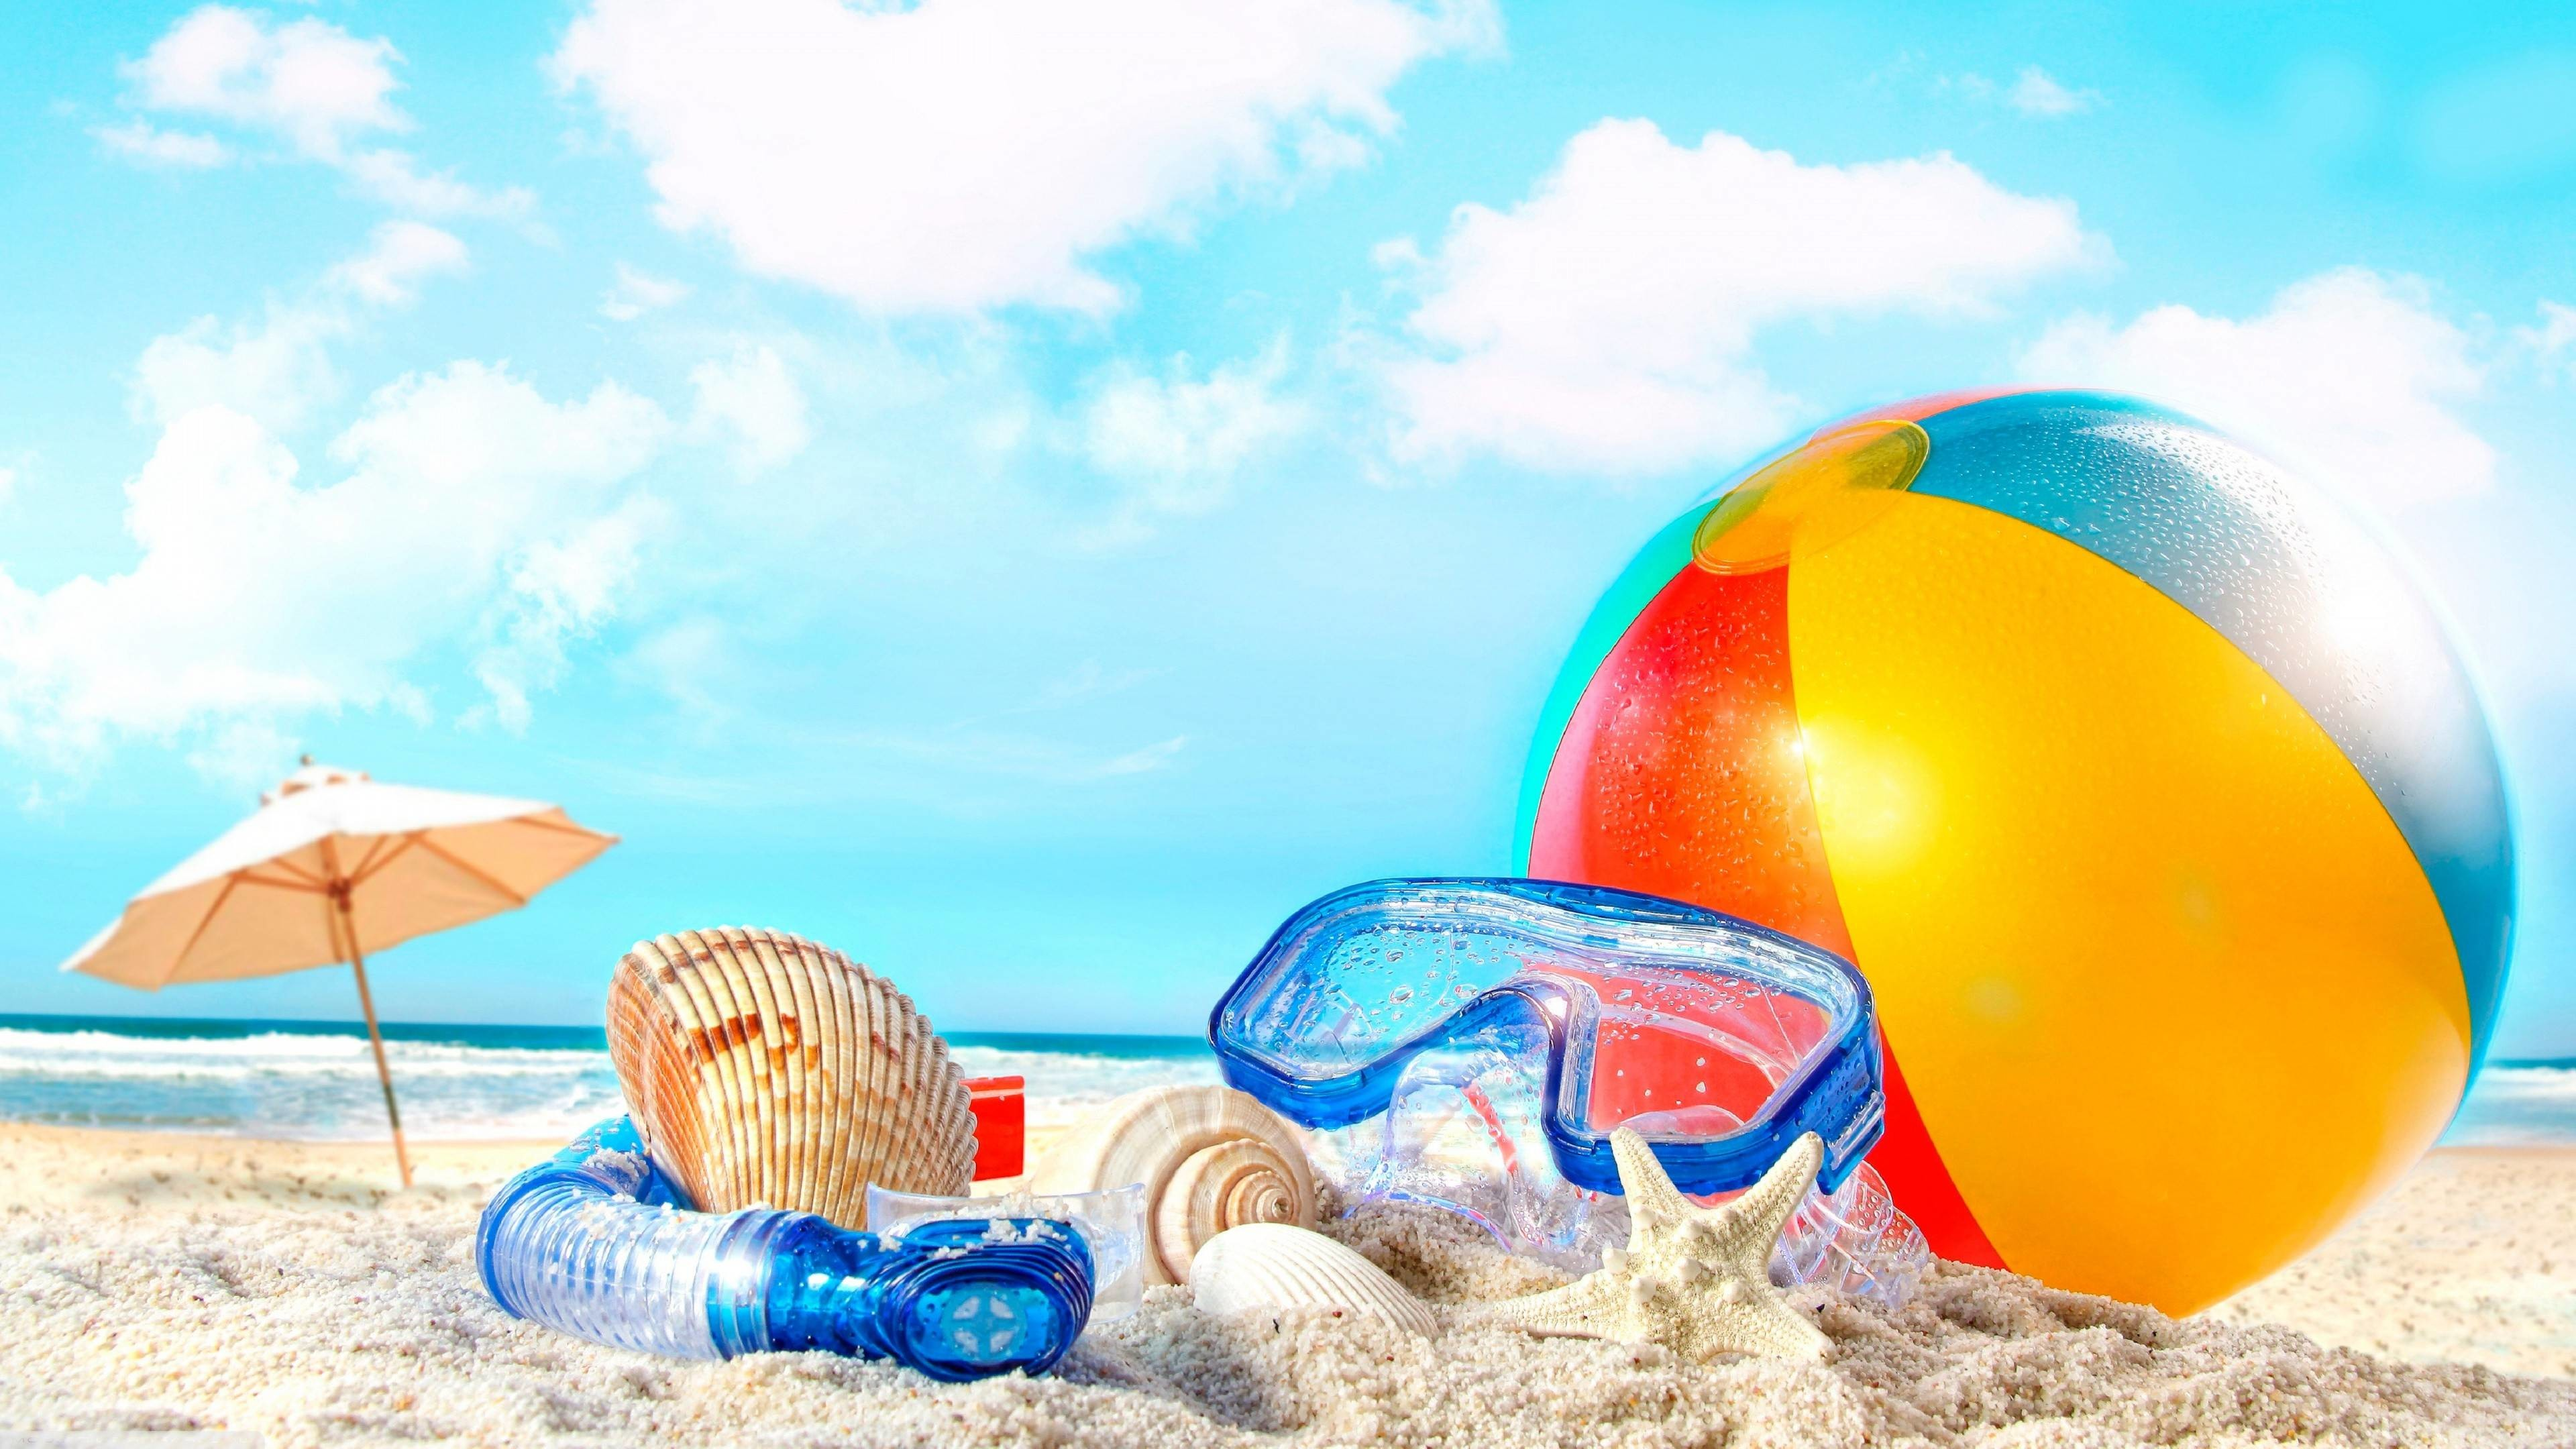 Summer Backgrounds Wallpapers – Wallpaper Cave